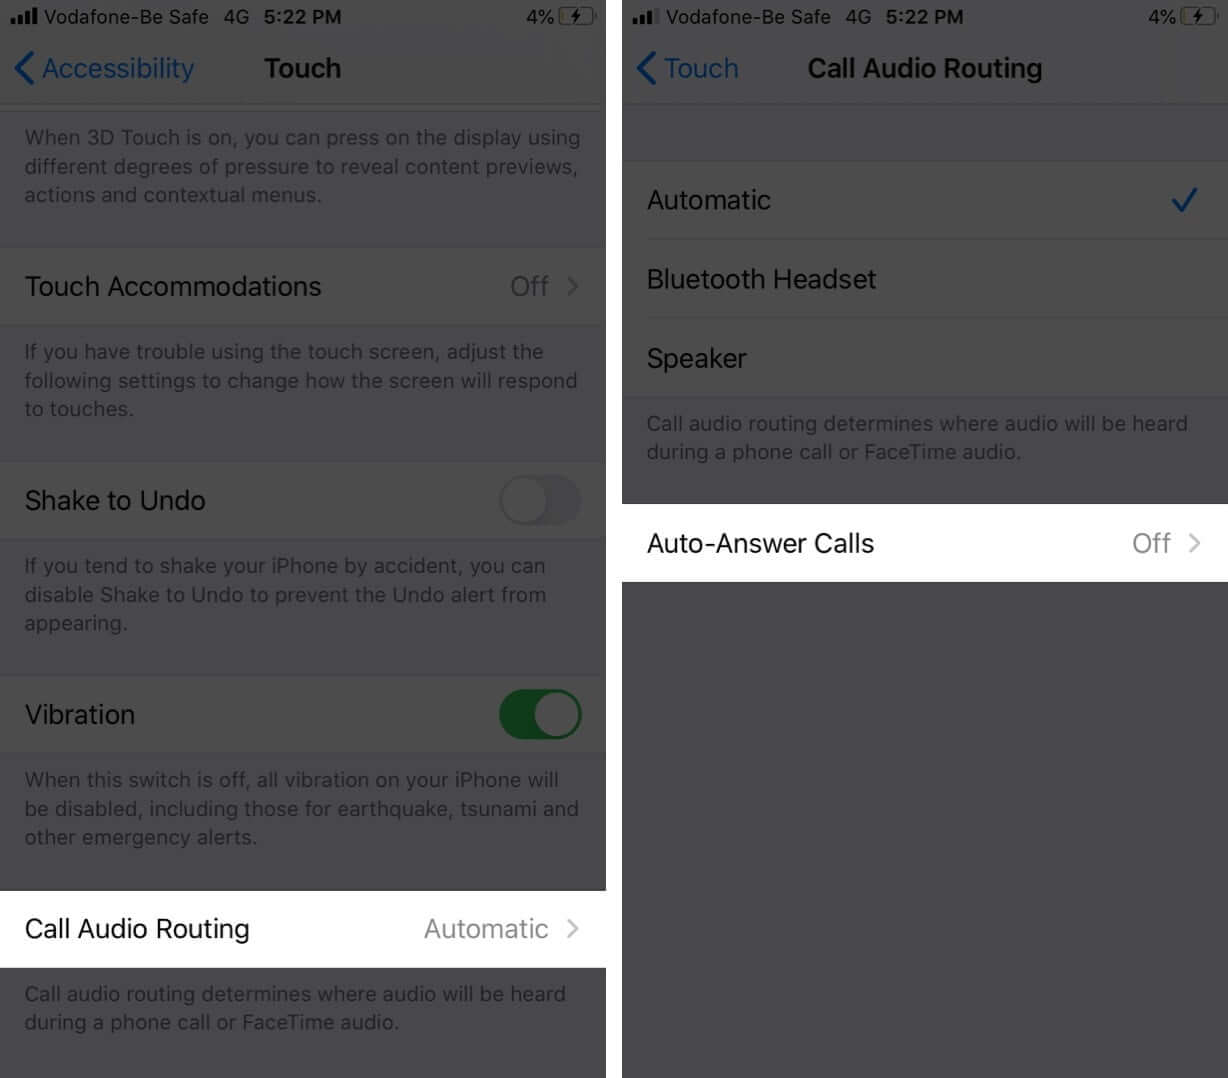 Tap on Call Audio Routing and Then Tap Auto-Answer Calls